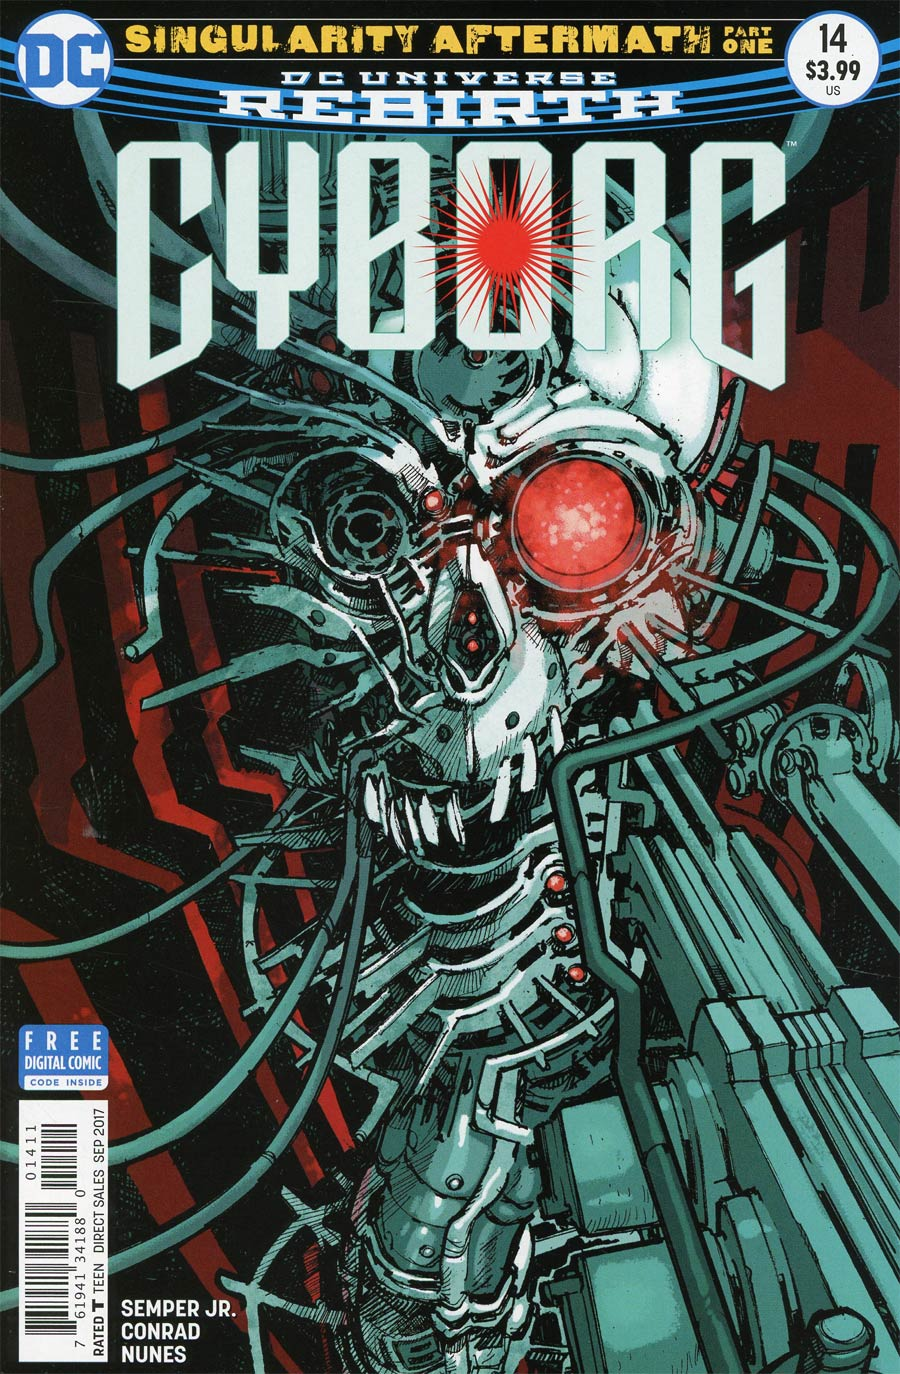 Cyborg Vol 2 #14 Cover A Regular Eric Canete Cover